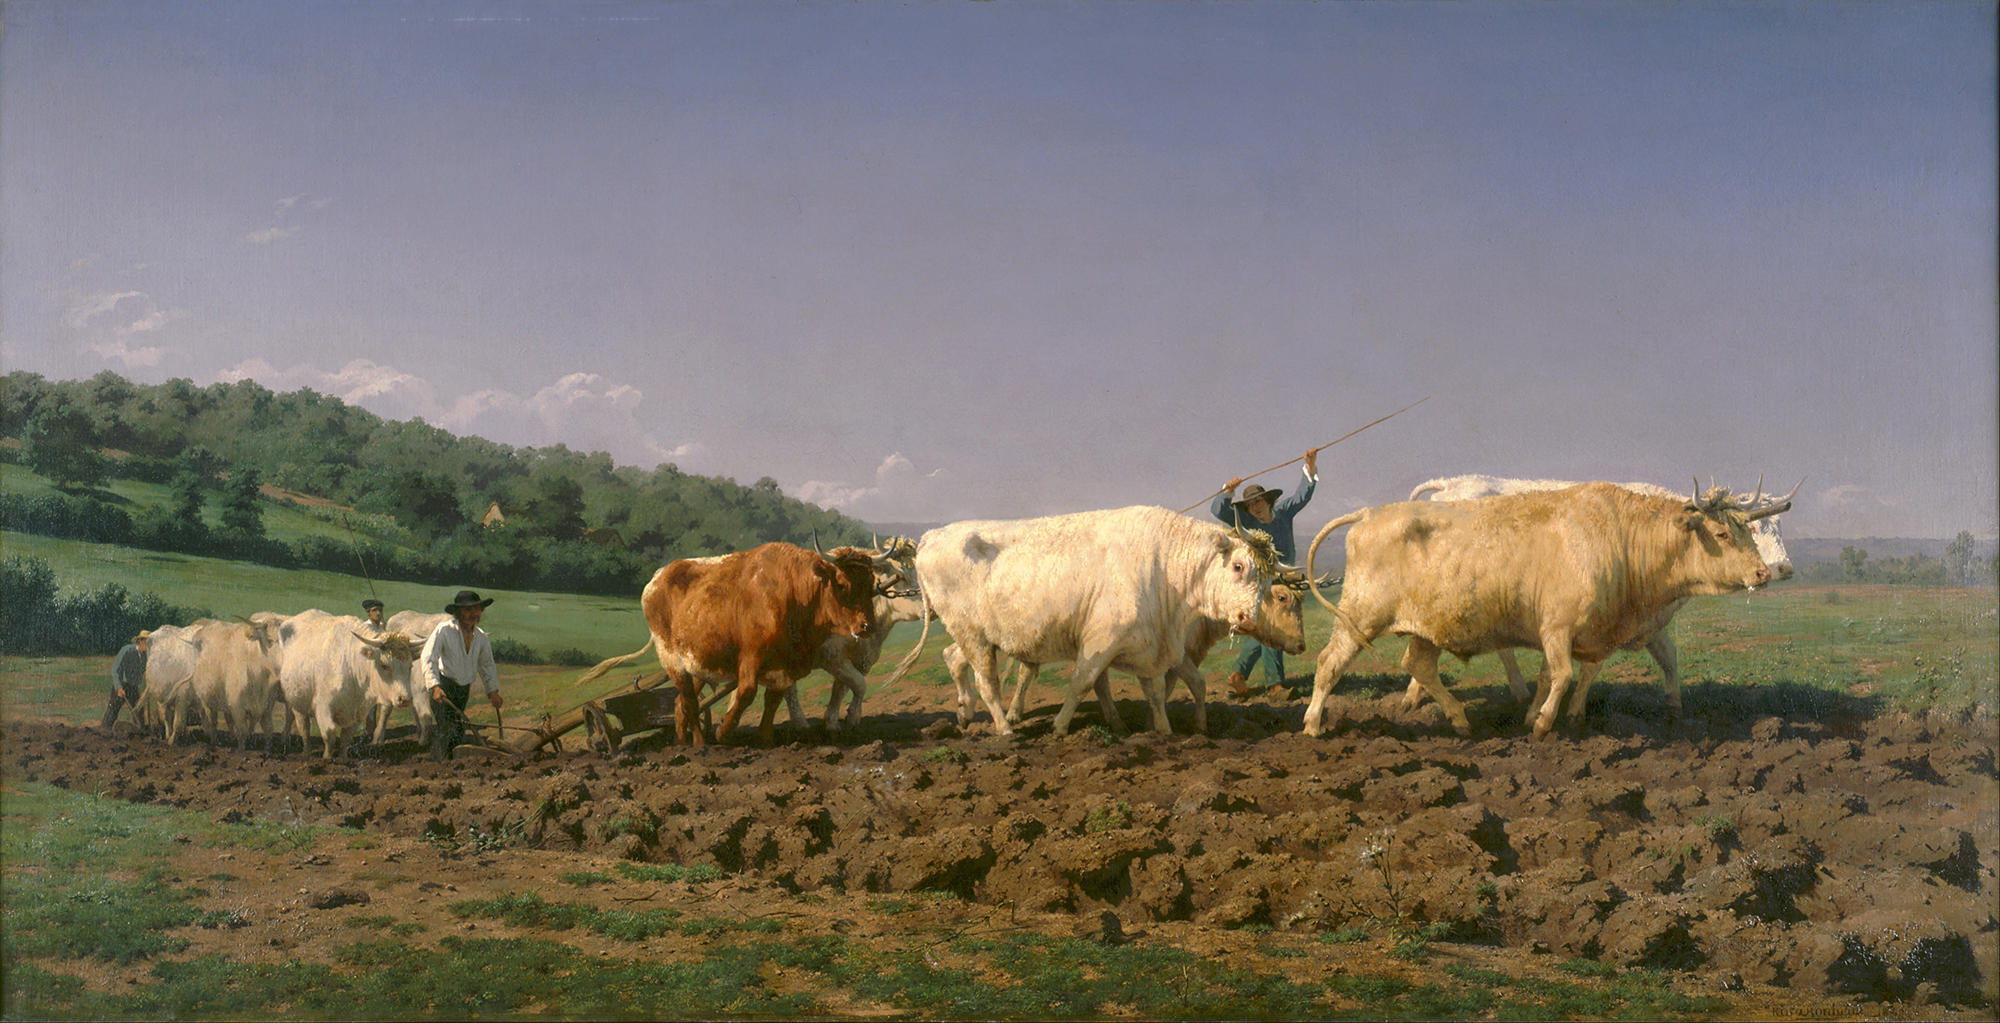 A painting of cows in a field